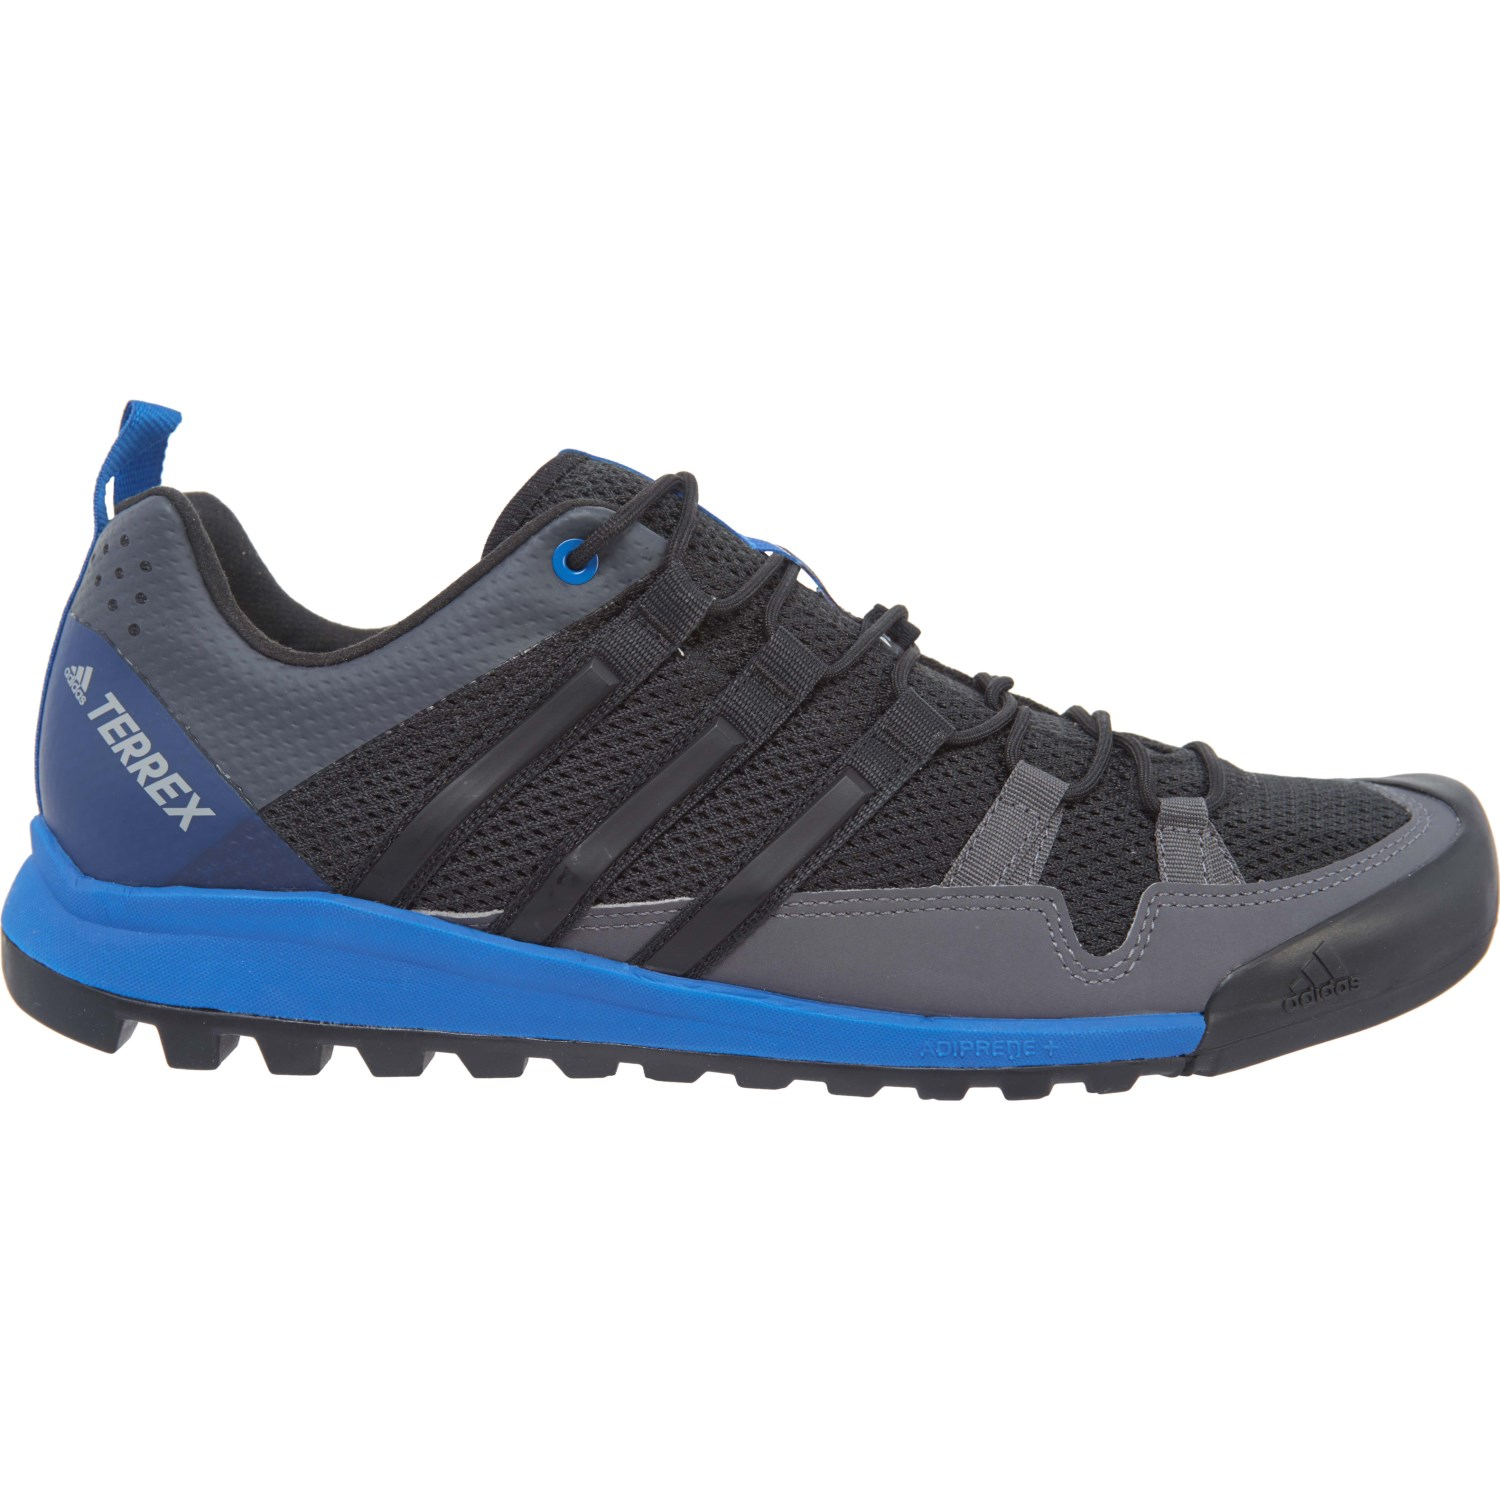 143e24e943f15 adidas Terrex Solo Hiking Shoes (For Men)